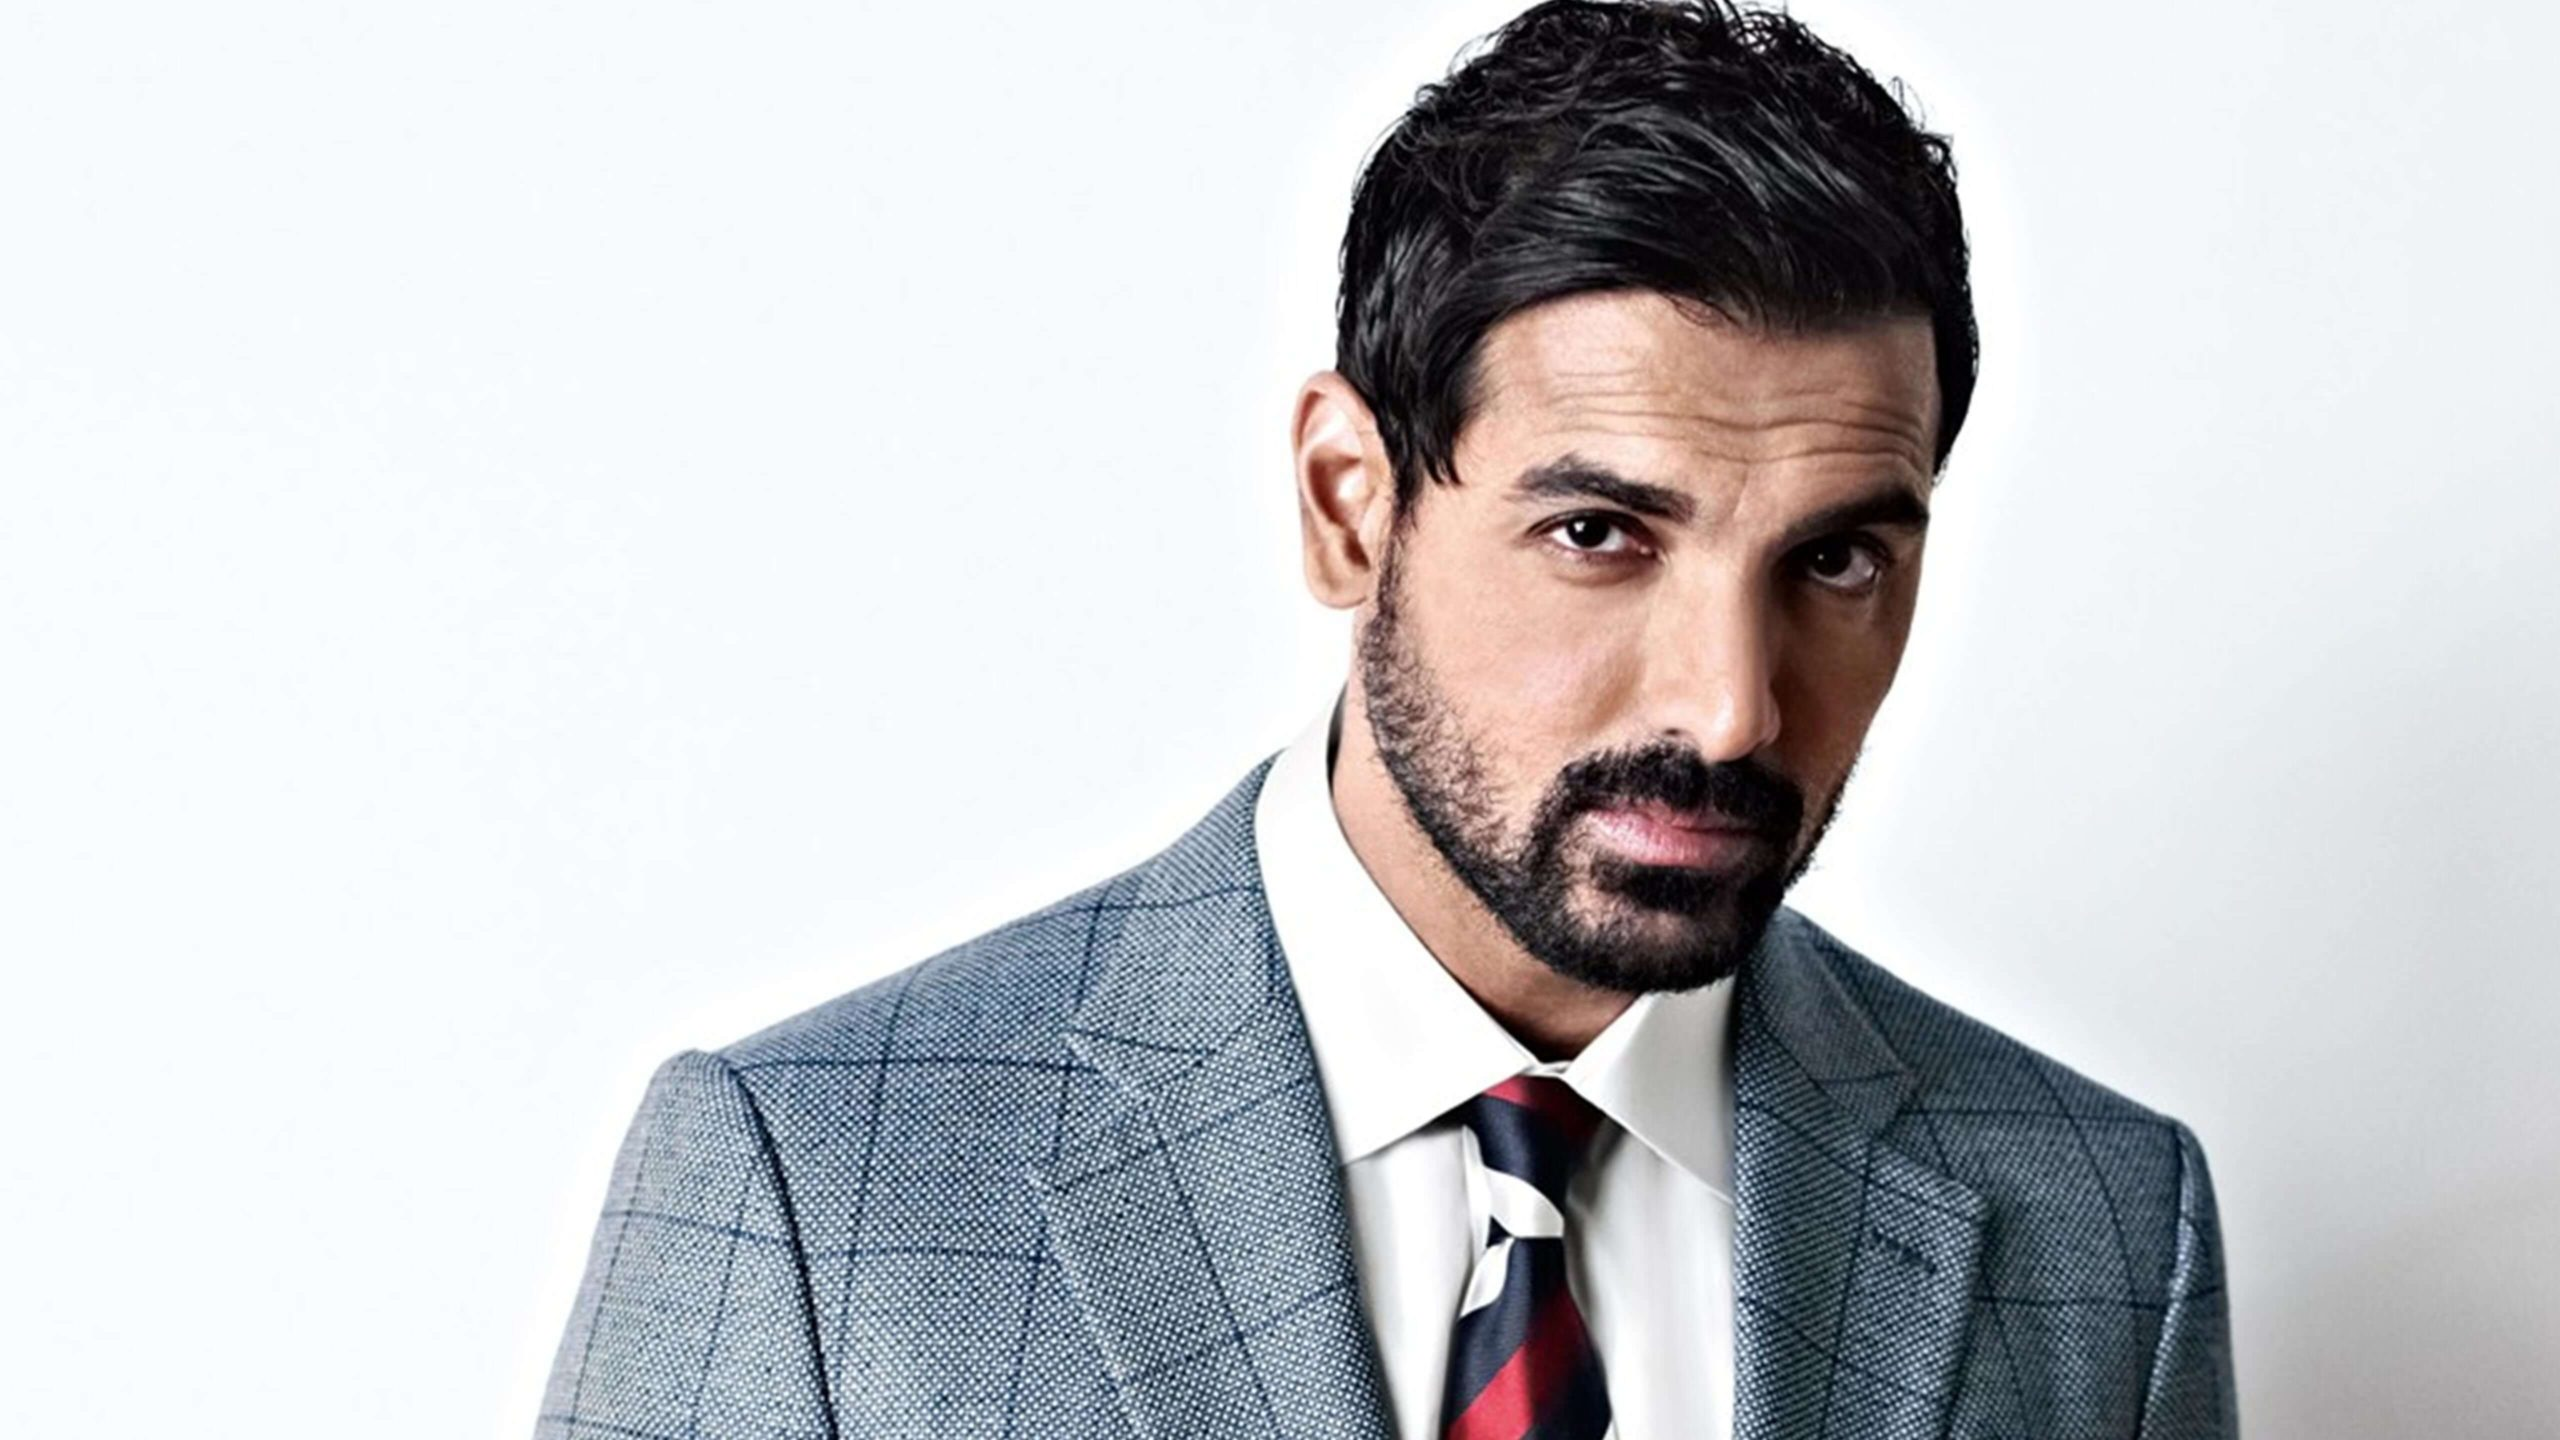 John Abraham wife, height, net worth, age, images(pic), religion, biography, movie, date of birth, family, father, son, education, awards, wiki, twitter, facebook, instagram, imdb, website, youtube